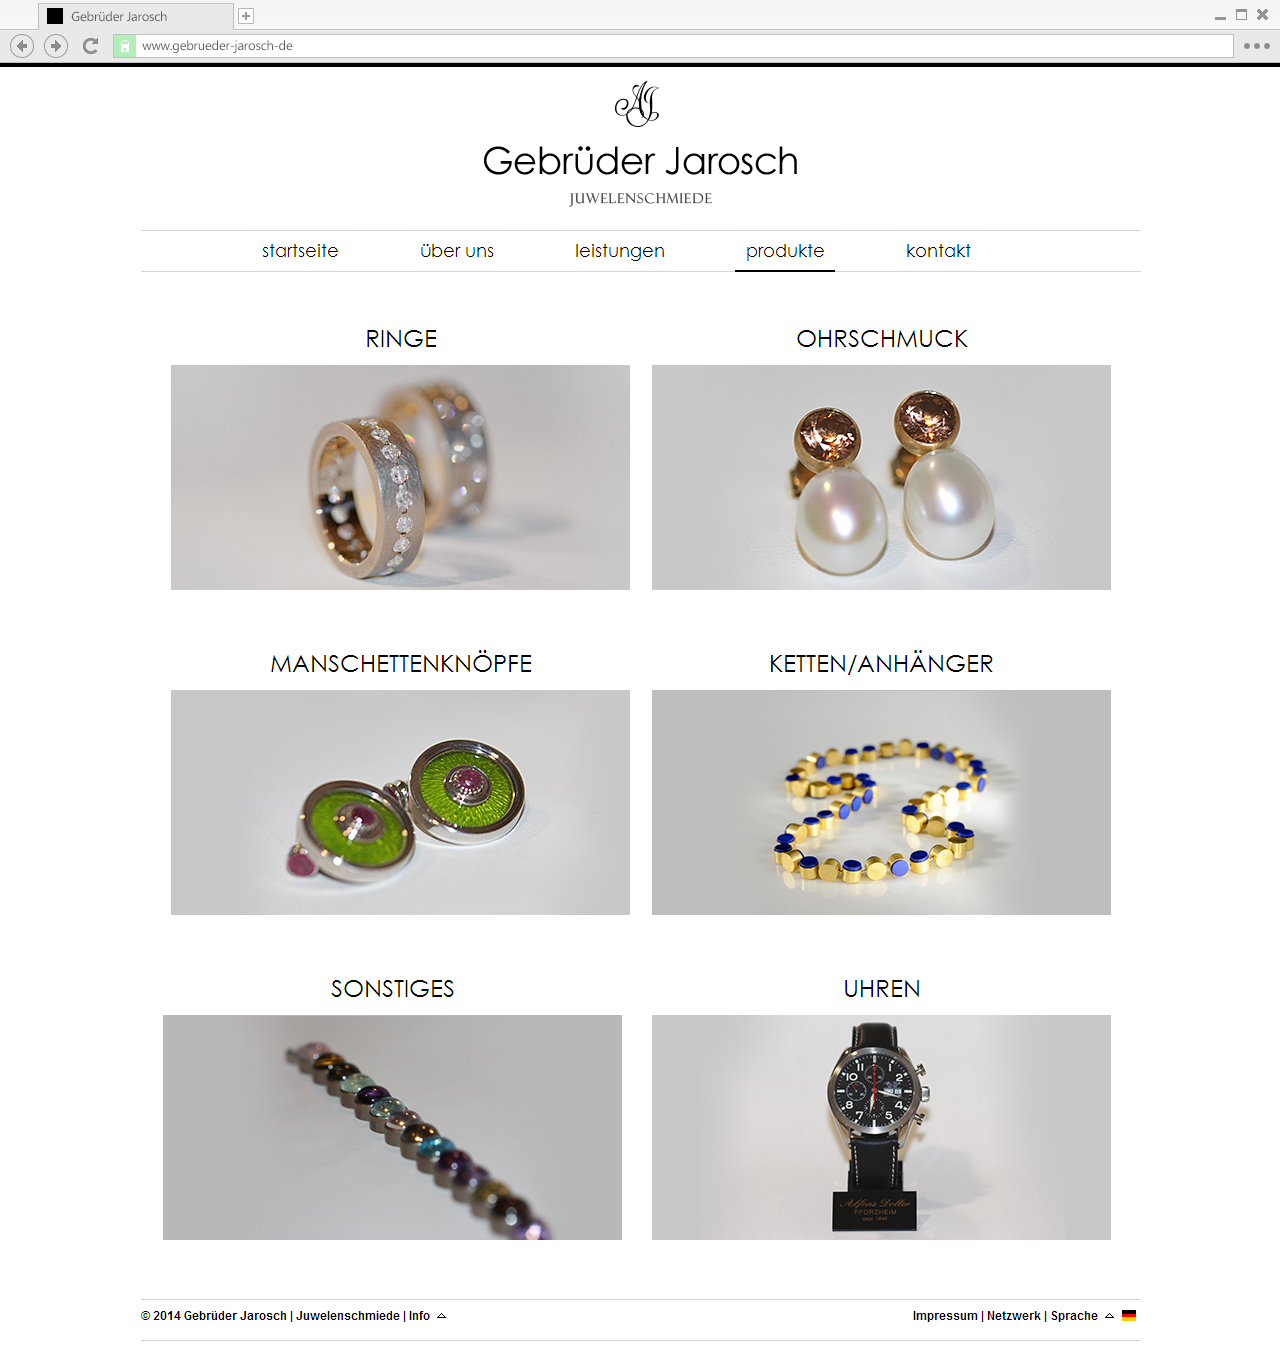 Gebrüder-Jarosch - Products overview